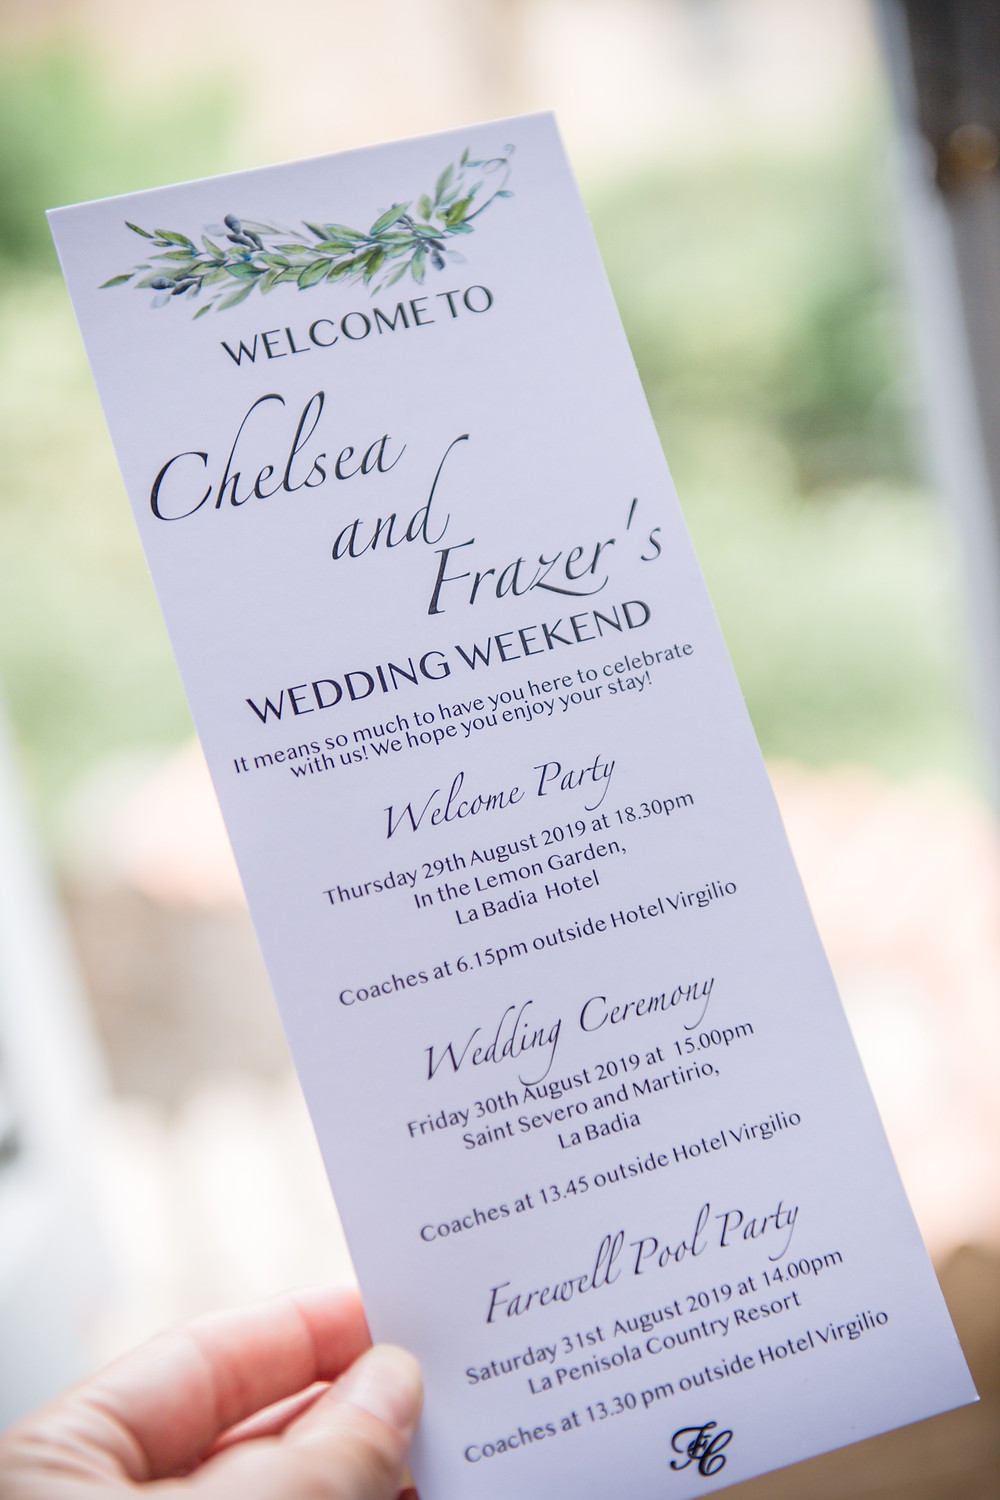 Wedding welcome card, detailing the wedding weekend plans to the guests